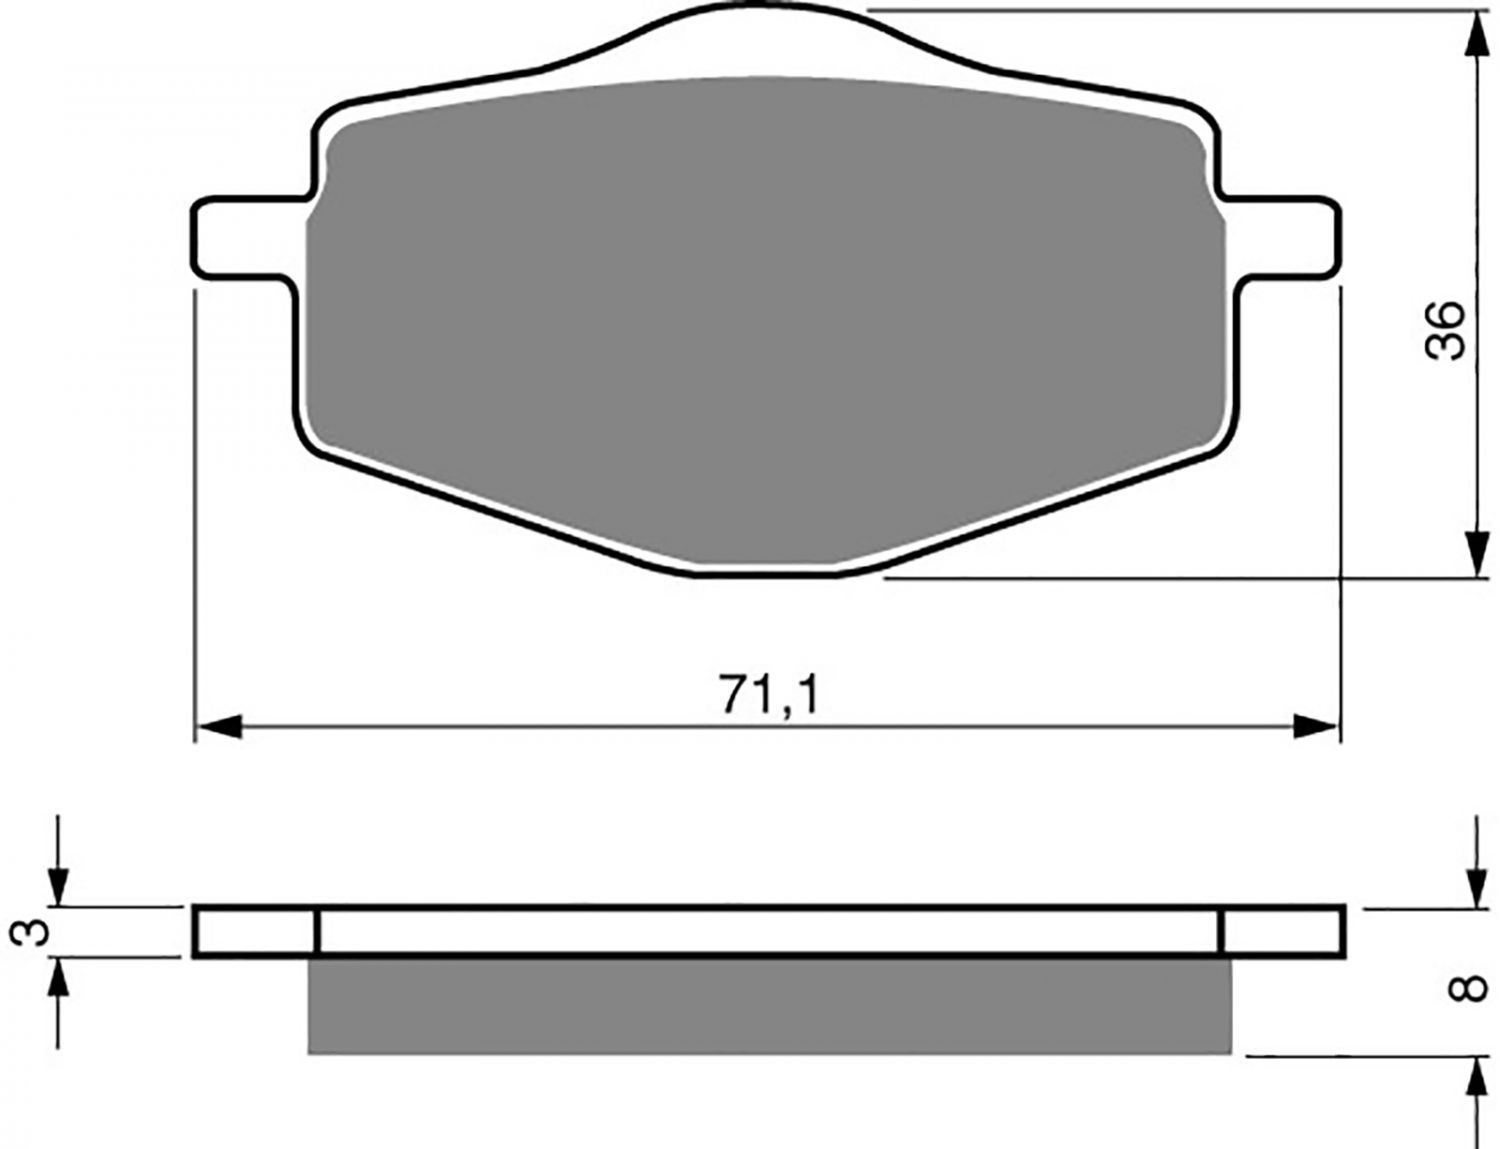 Goldfren S33 Brake Pads - 700018GS image